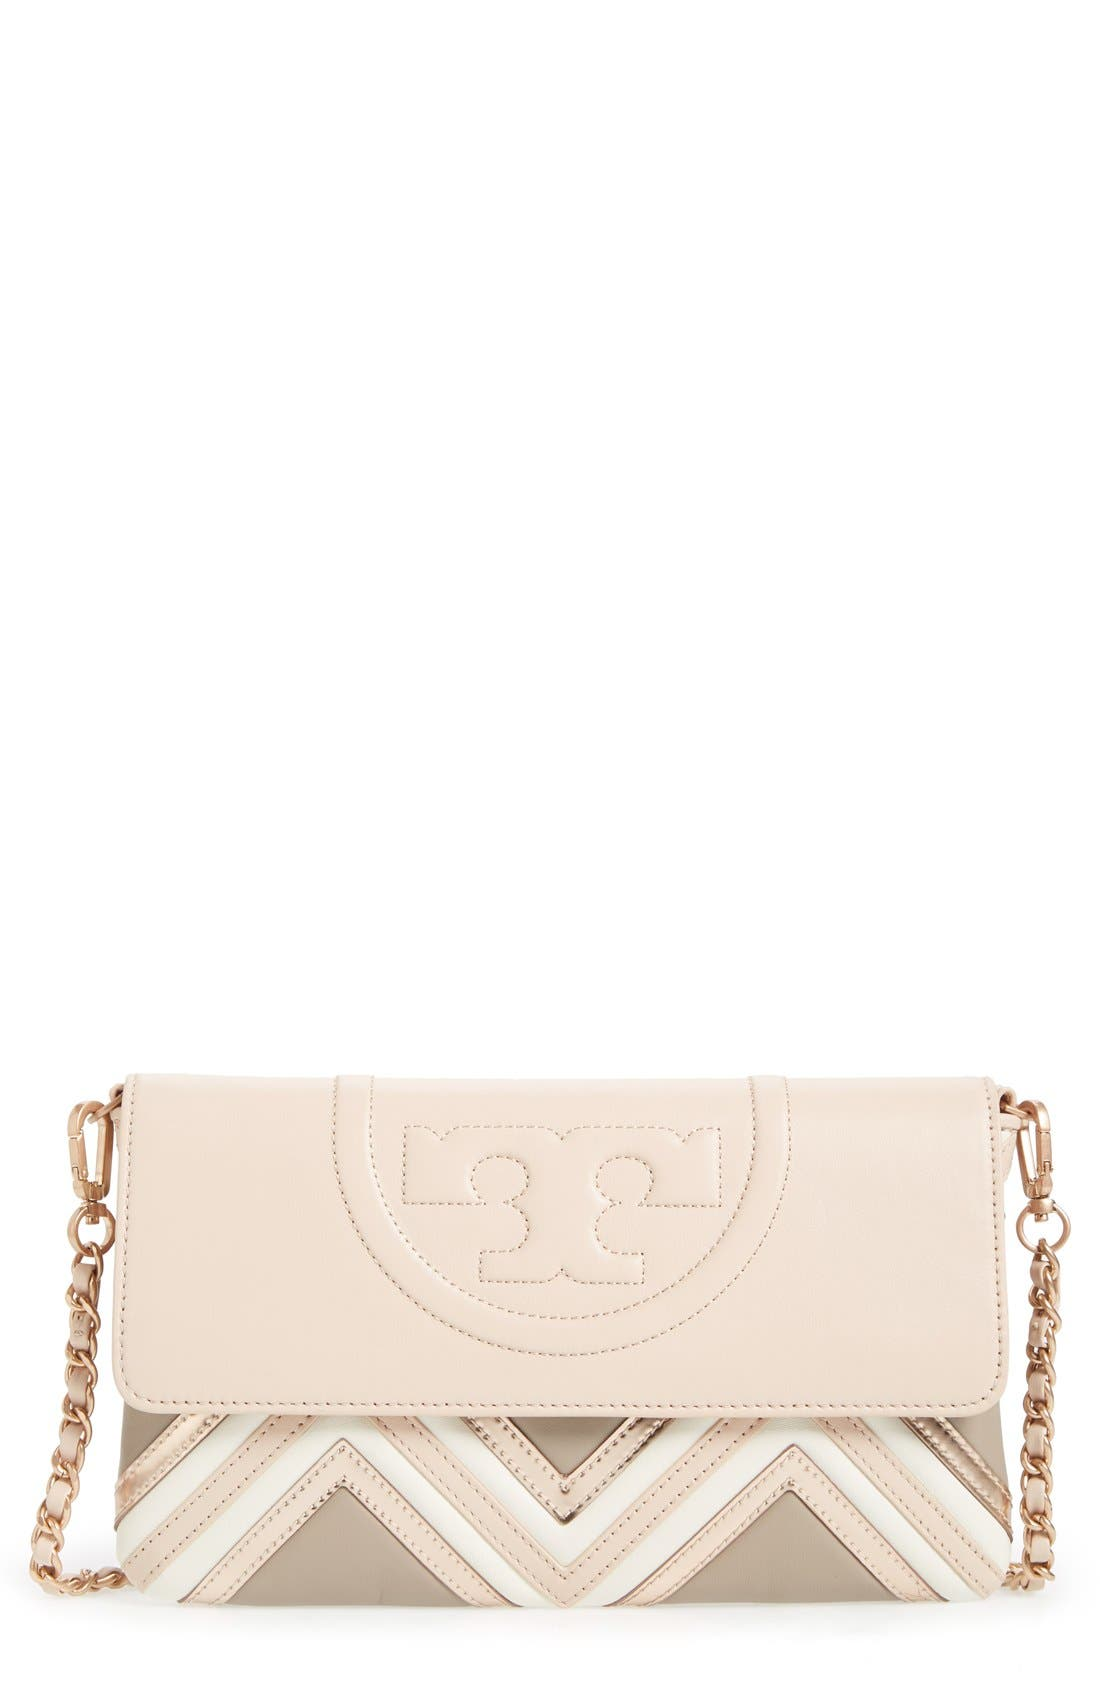 Main Image - Tory Burch 'Fleming Geo' Convertible Leather Clutch